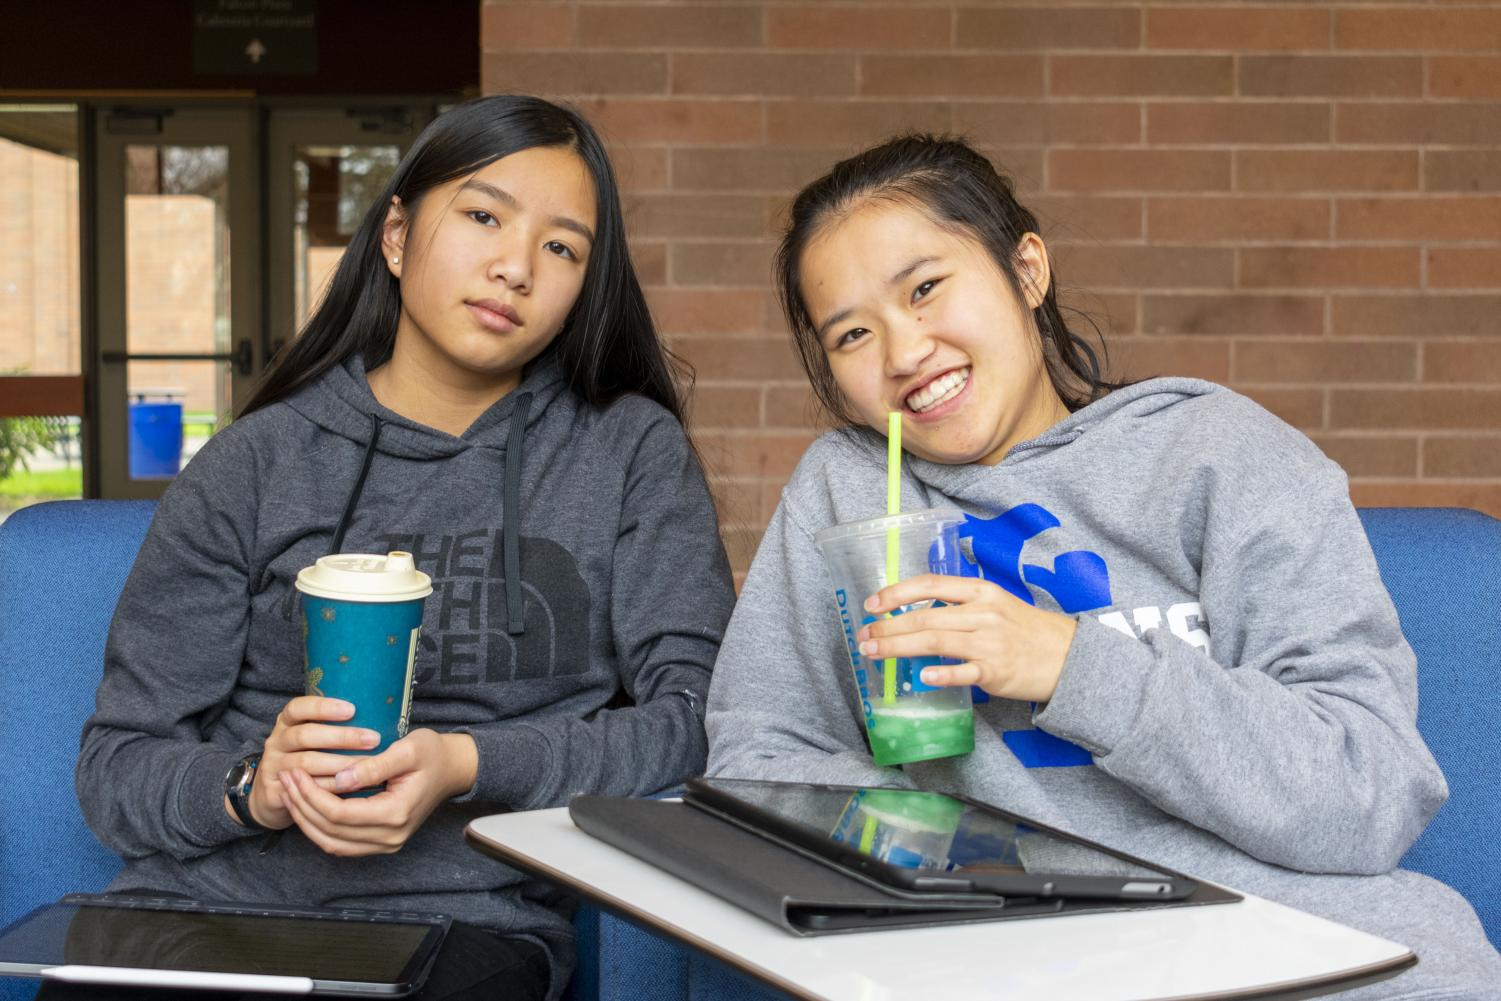 Caffeine gives students the burst of energy they need in the morning to stay focused at school.